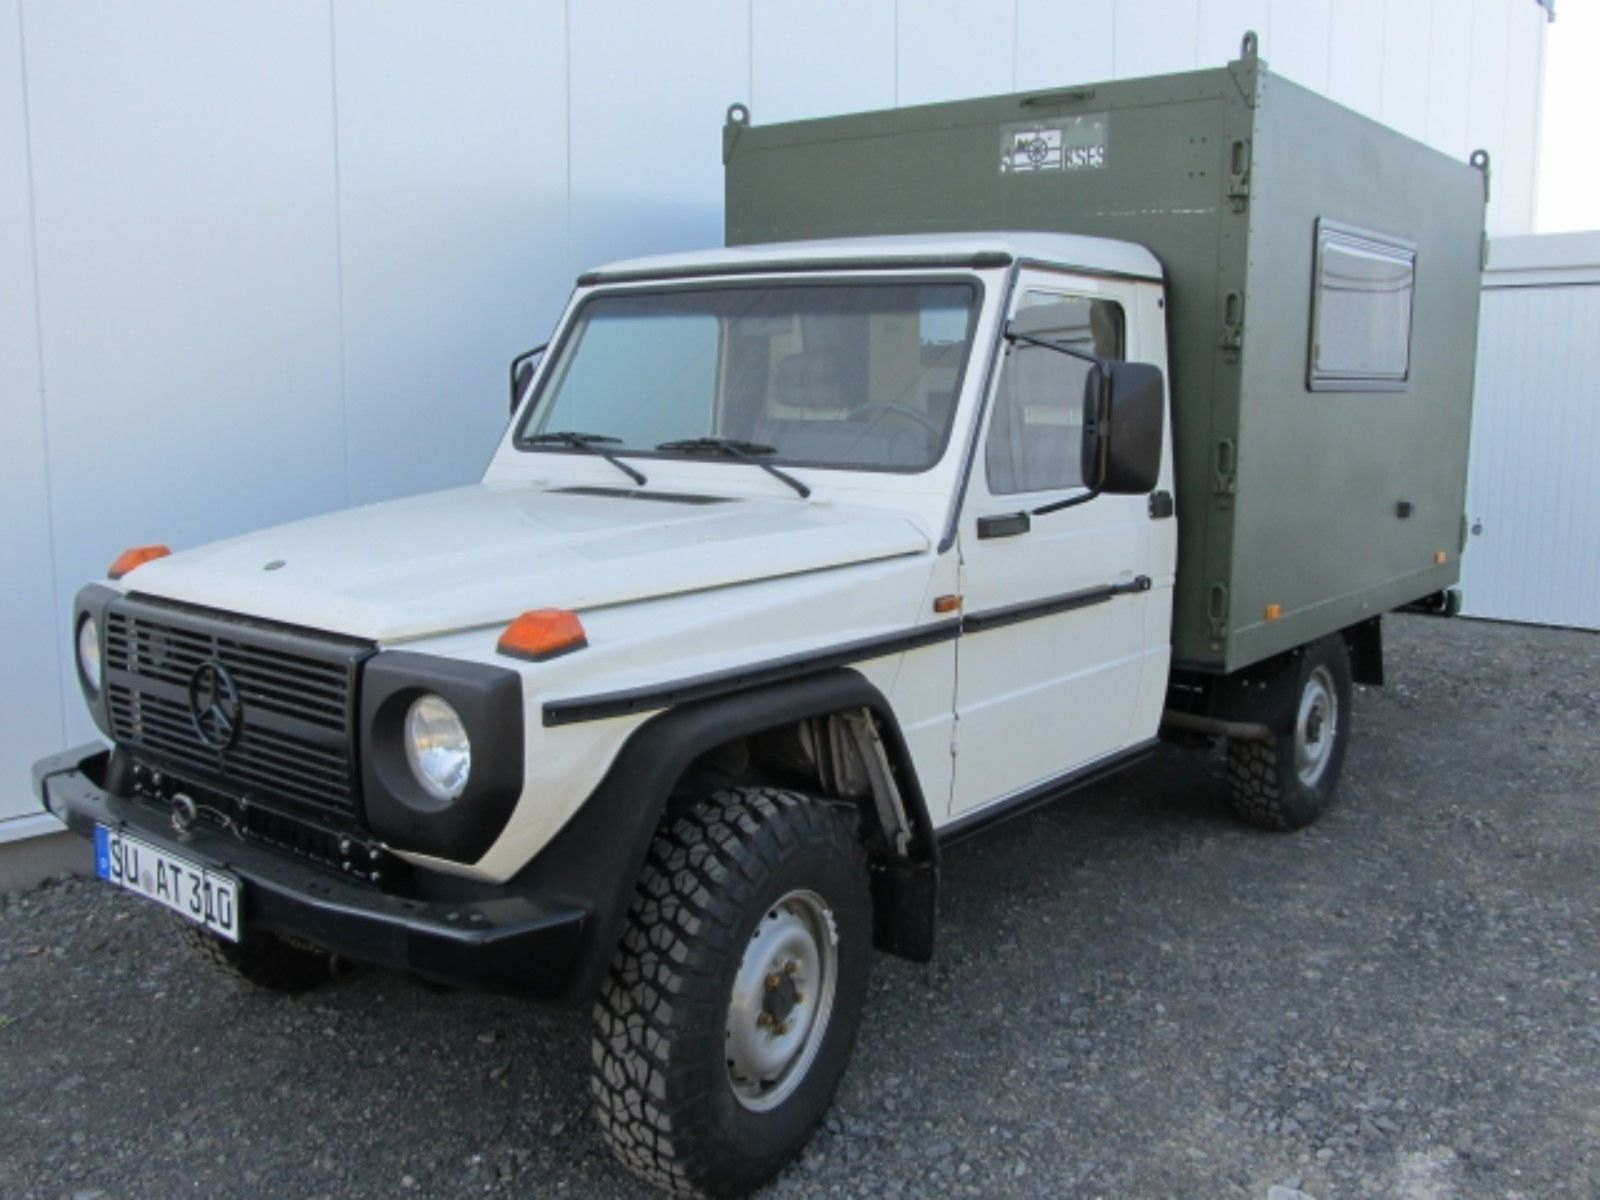 Mercedes benz 280 ge swb w460 1979 01 1990 pictures to pin - Mercedes Benz G 250 Mercedes G300 136hp Camper 4x4 All Wheel Drive